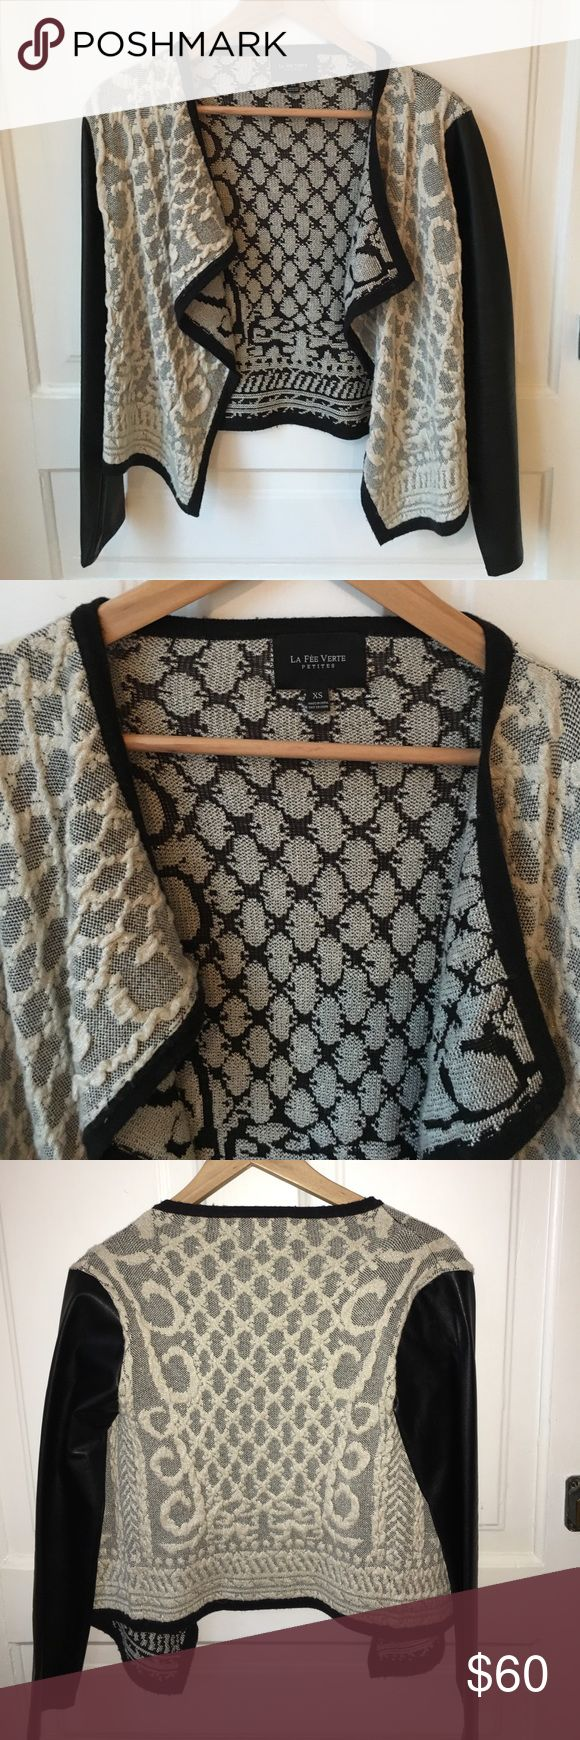 Open Front, Faux Leather Sleeve - Anthropologie Super chic black and silver cardigan from Anthropologie. Faux leather sleeve. Worn once, with notable impressions in the sleeve from where. Looks amazing with dresses or jeans. la fee verte Sweaters Cardigans